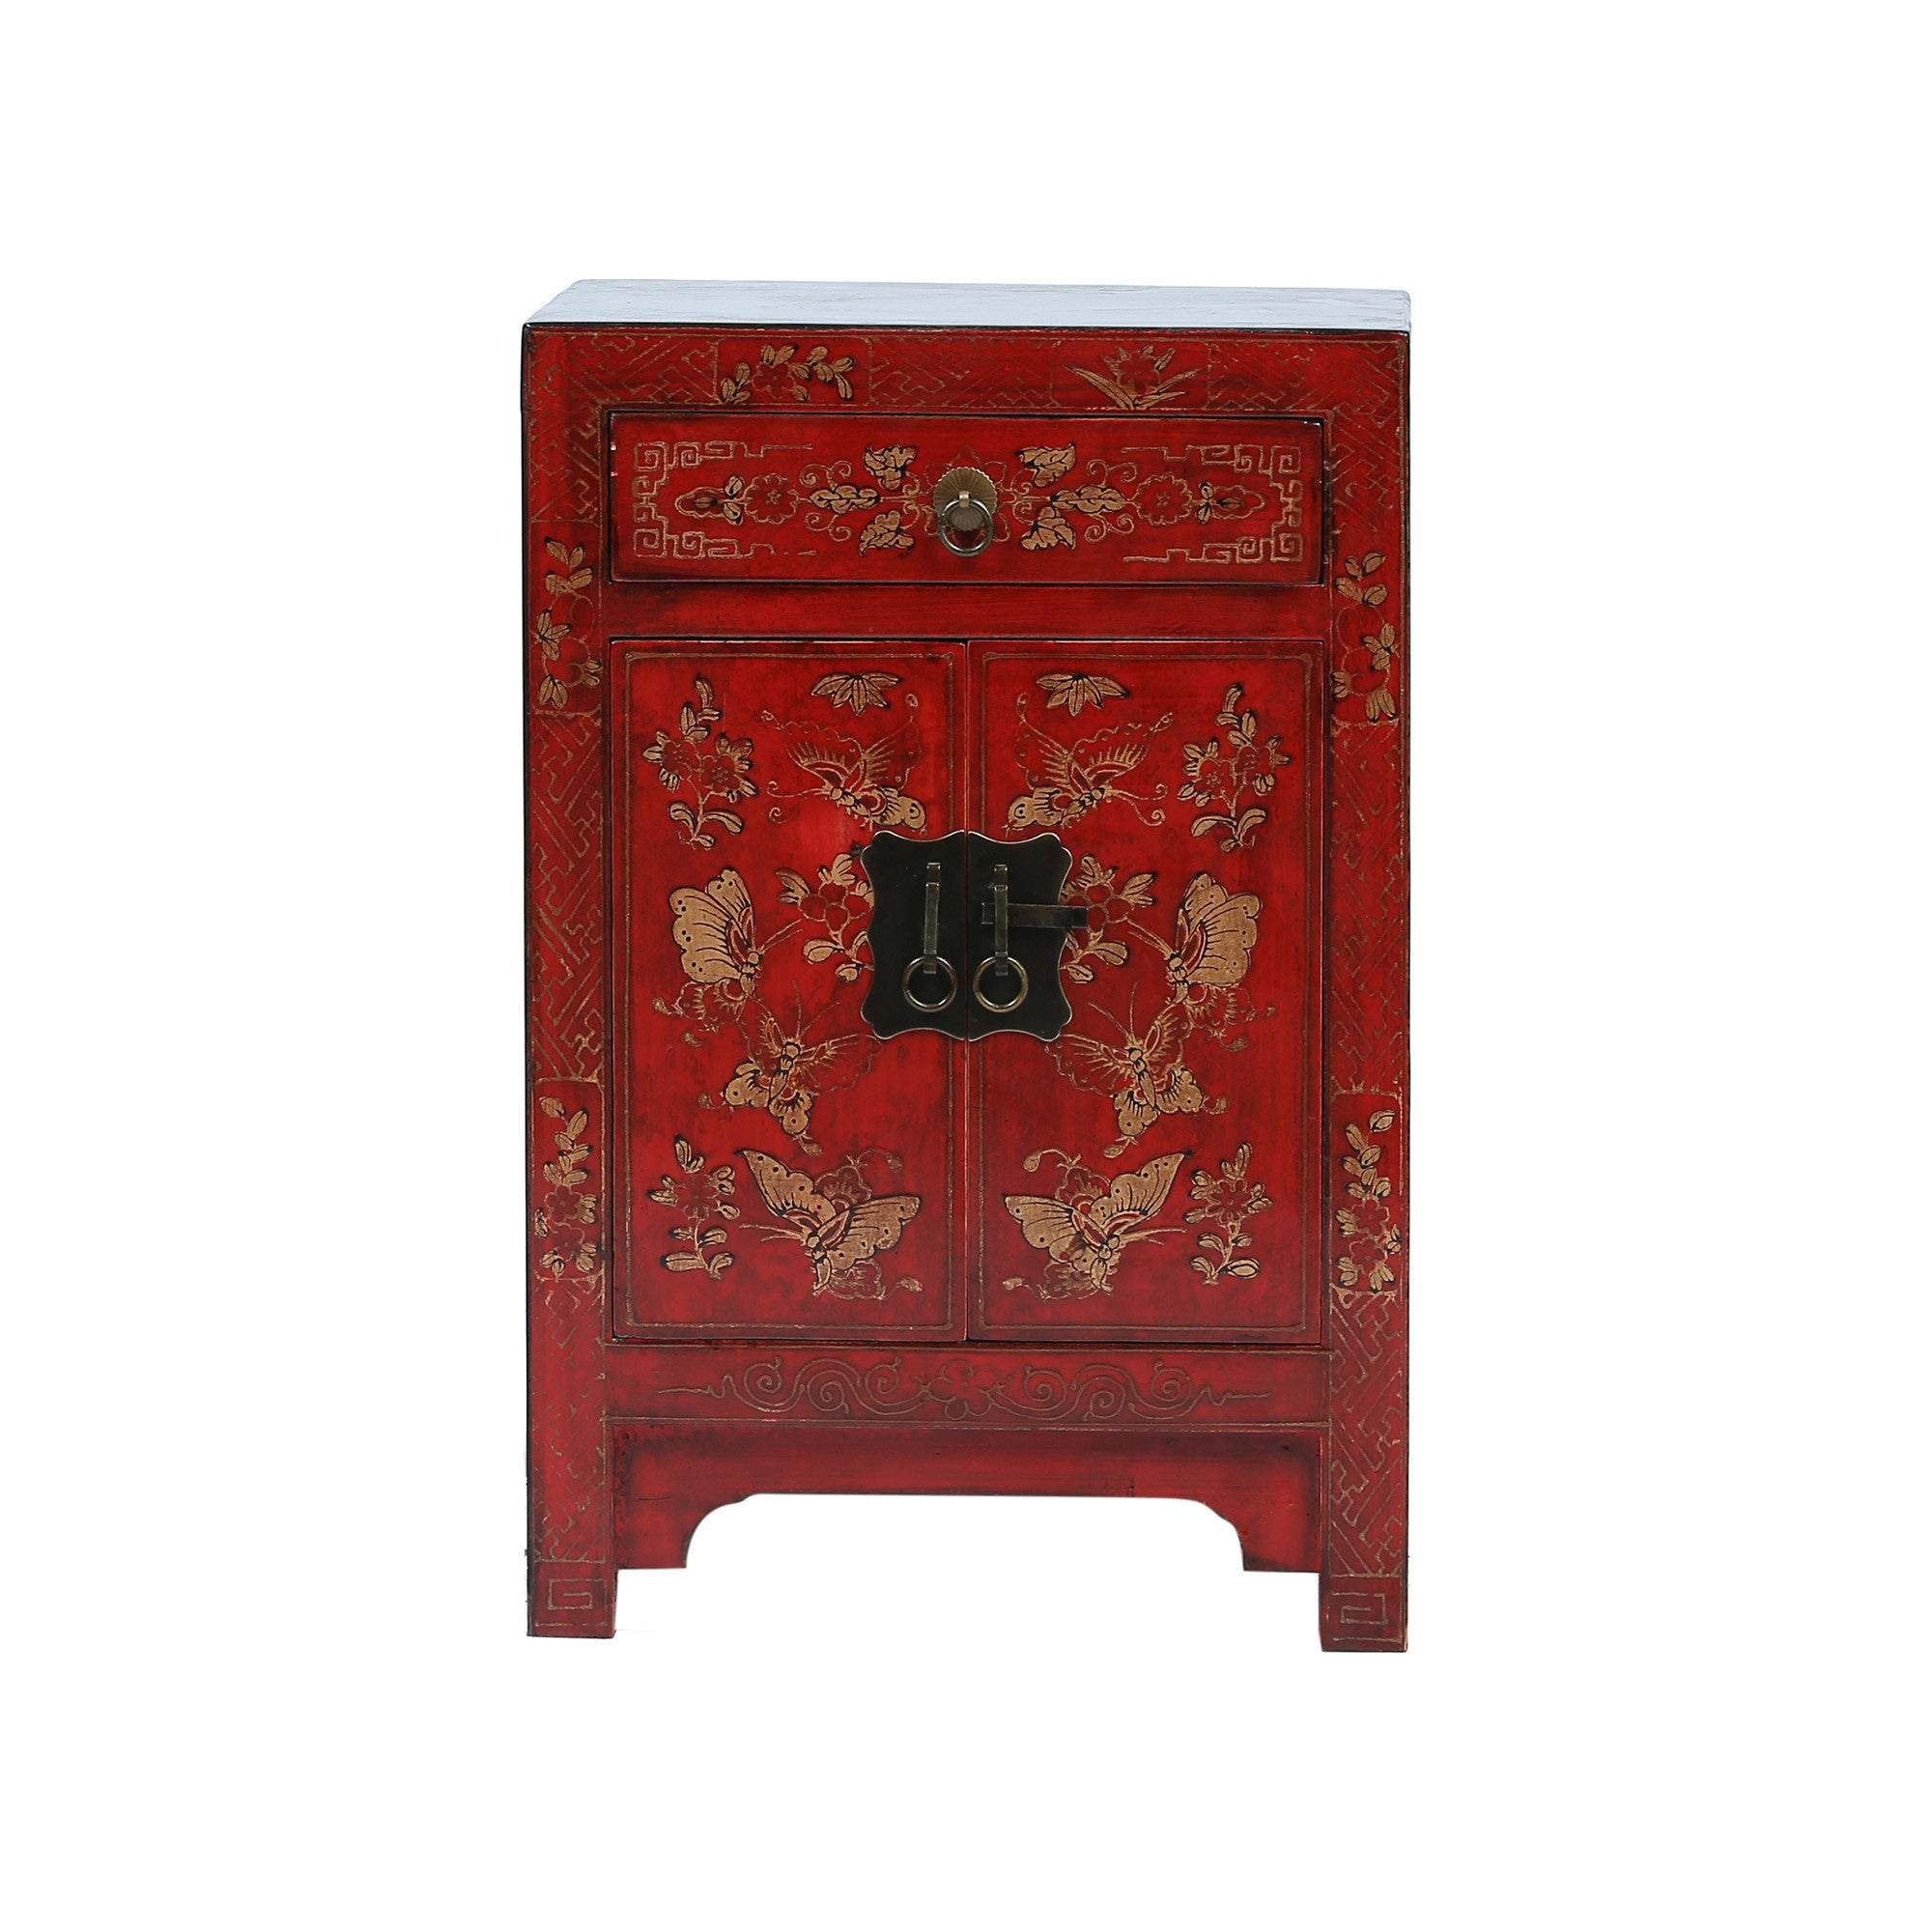 Red Chinese Bedside Cabinet - Butterflies front view